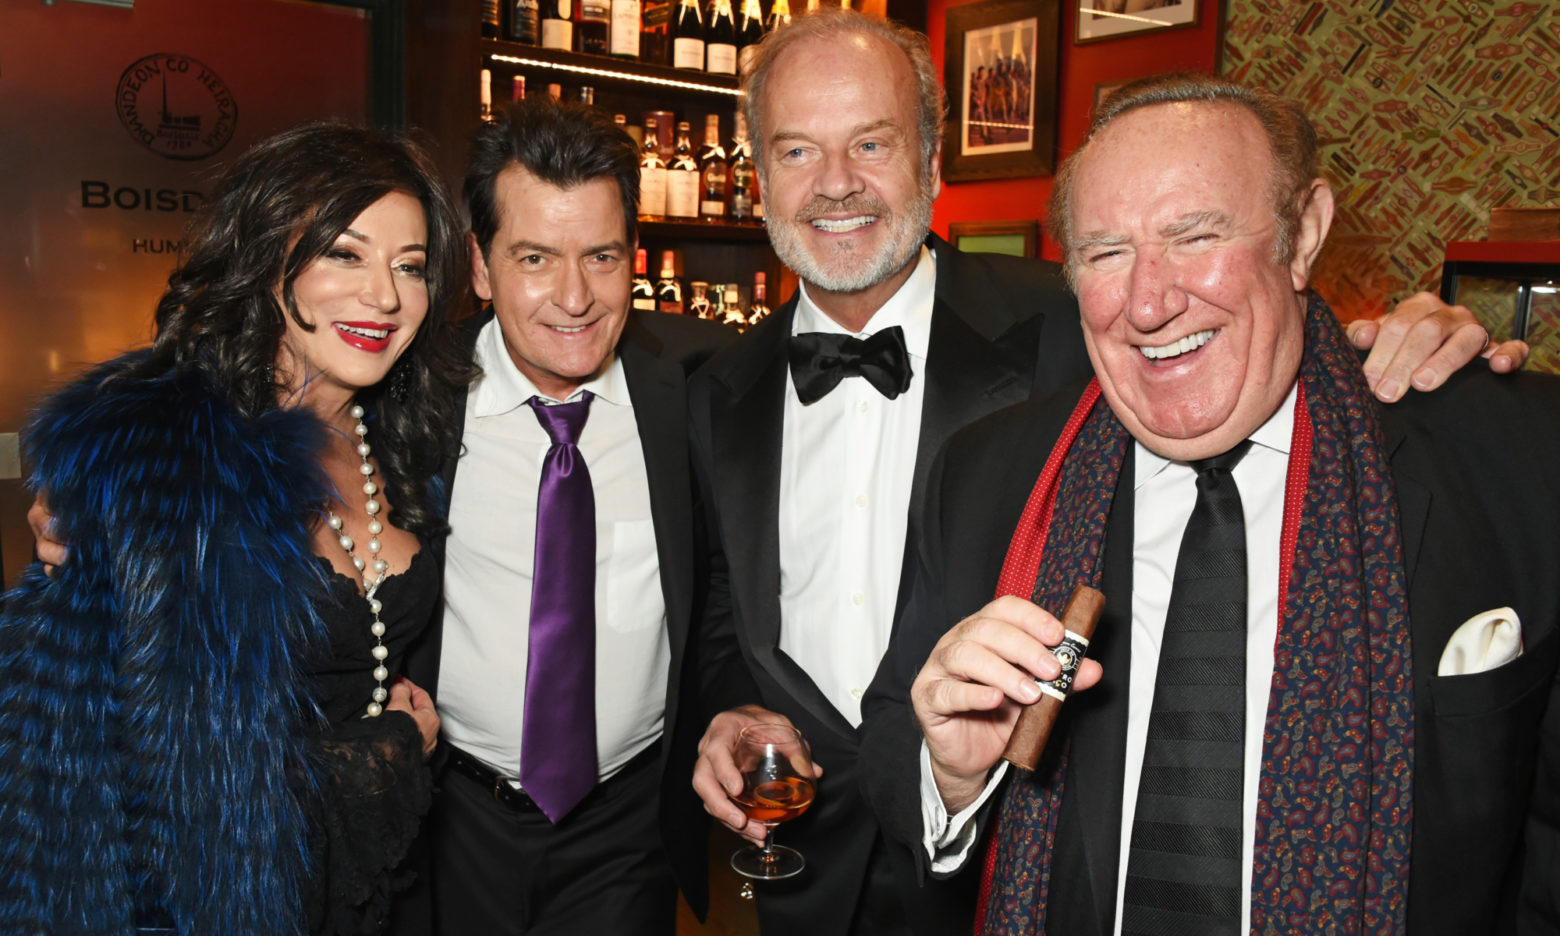 Kelsey Grammer Crowned Snow Queen Cigar Vodka Smoker Of The Year 2016